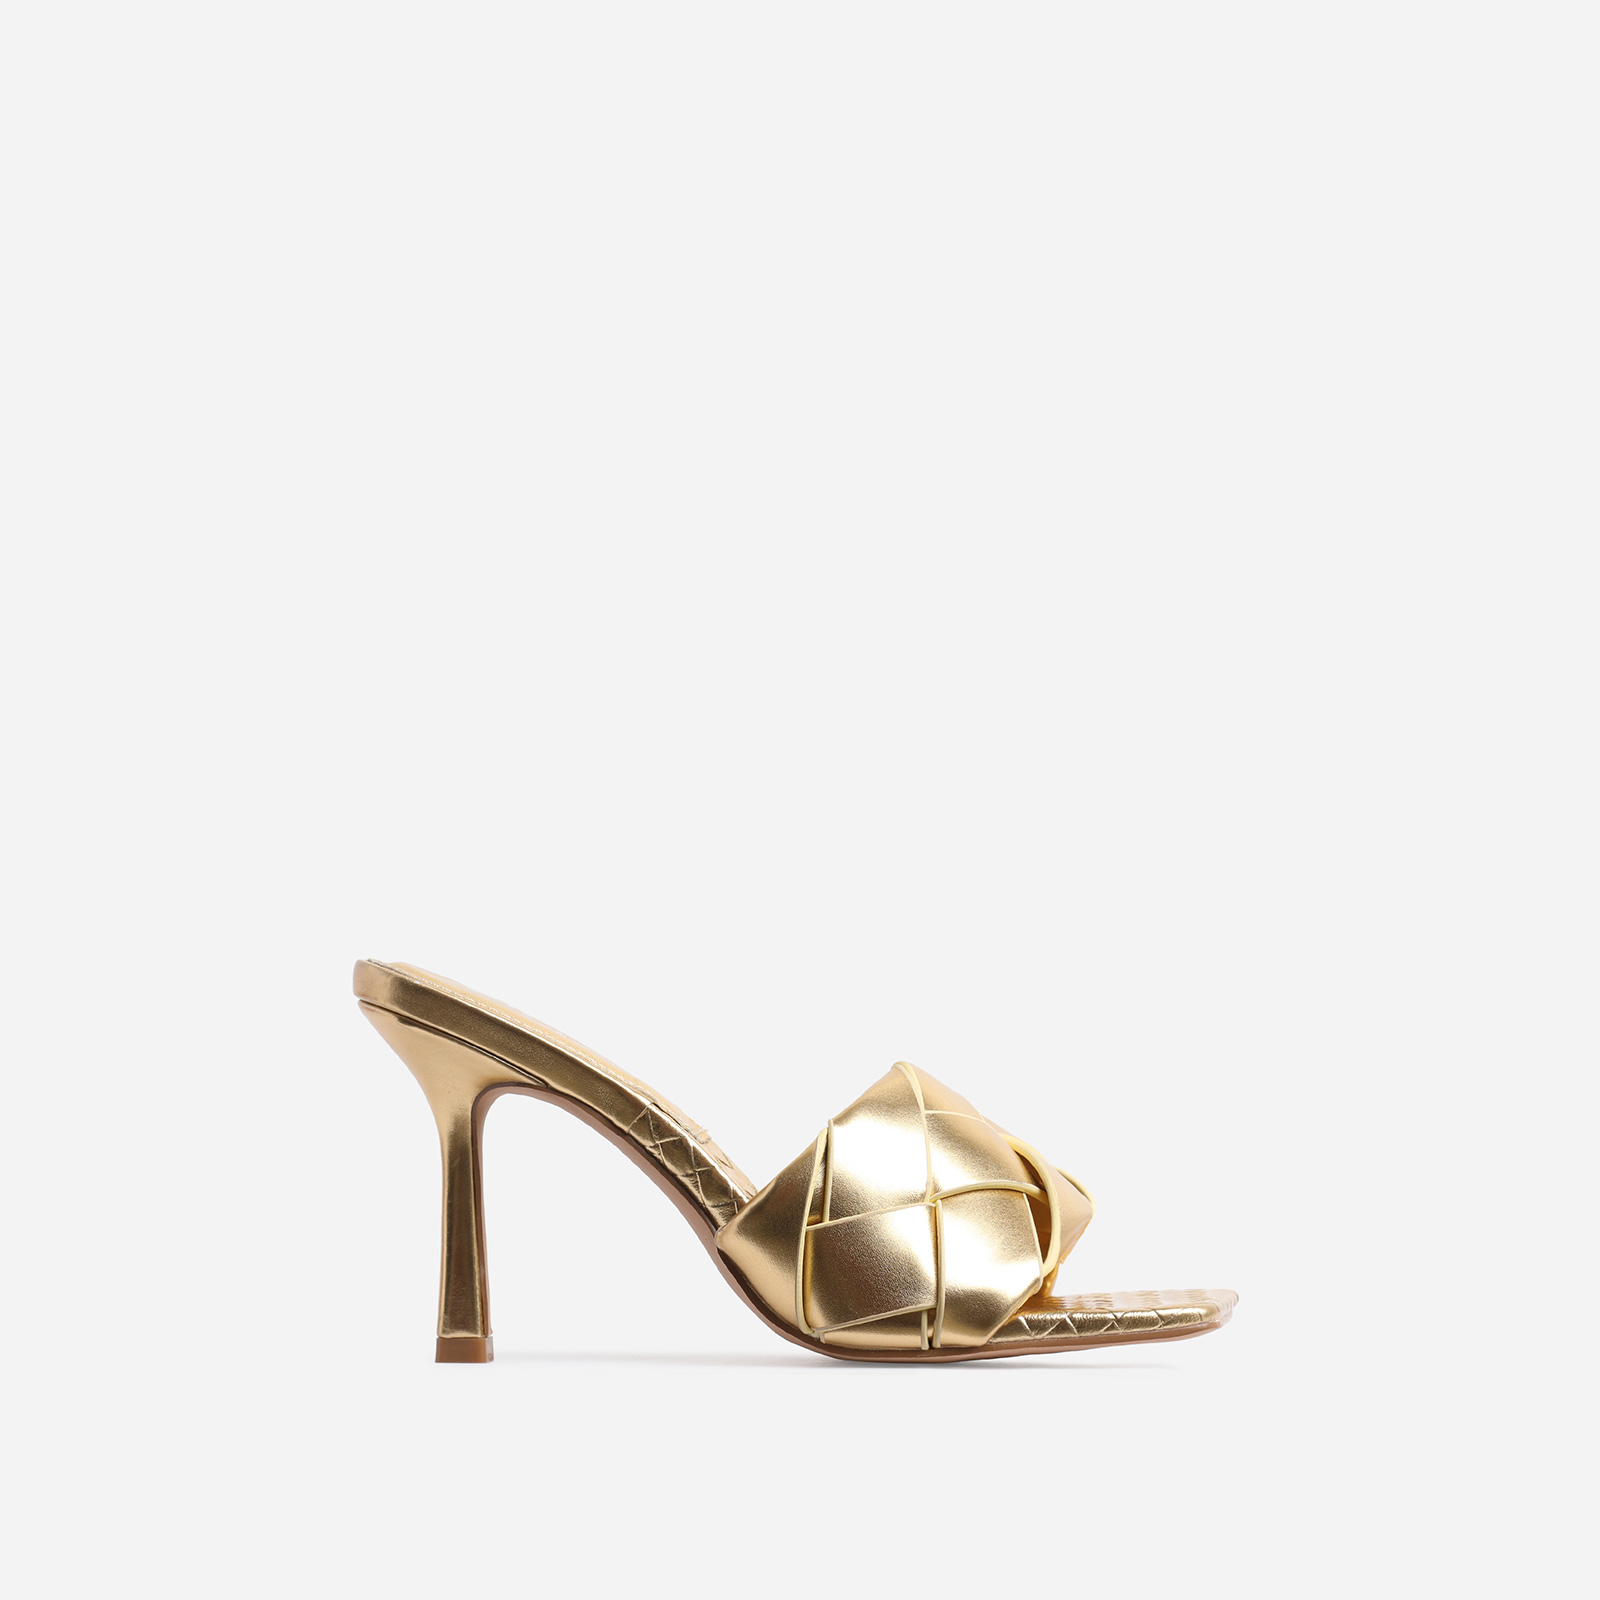 Turntup Woven Square Peep Toe Mule In Metallic Gold Faux Leather